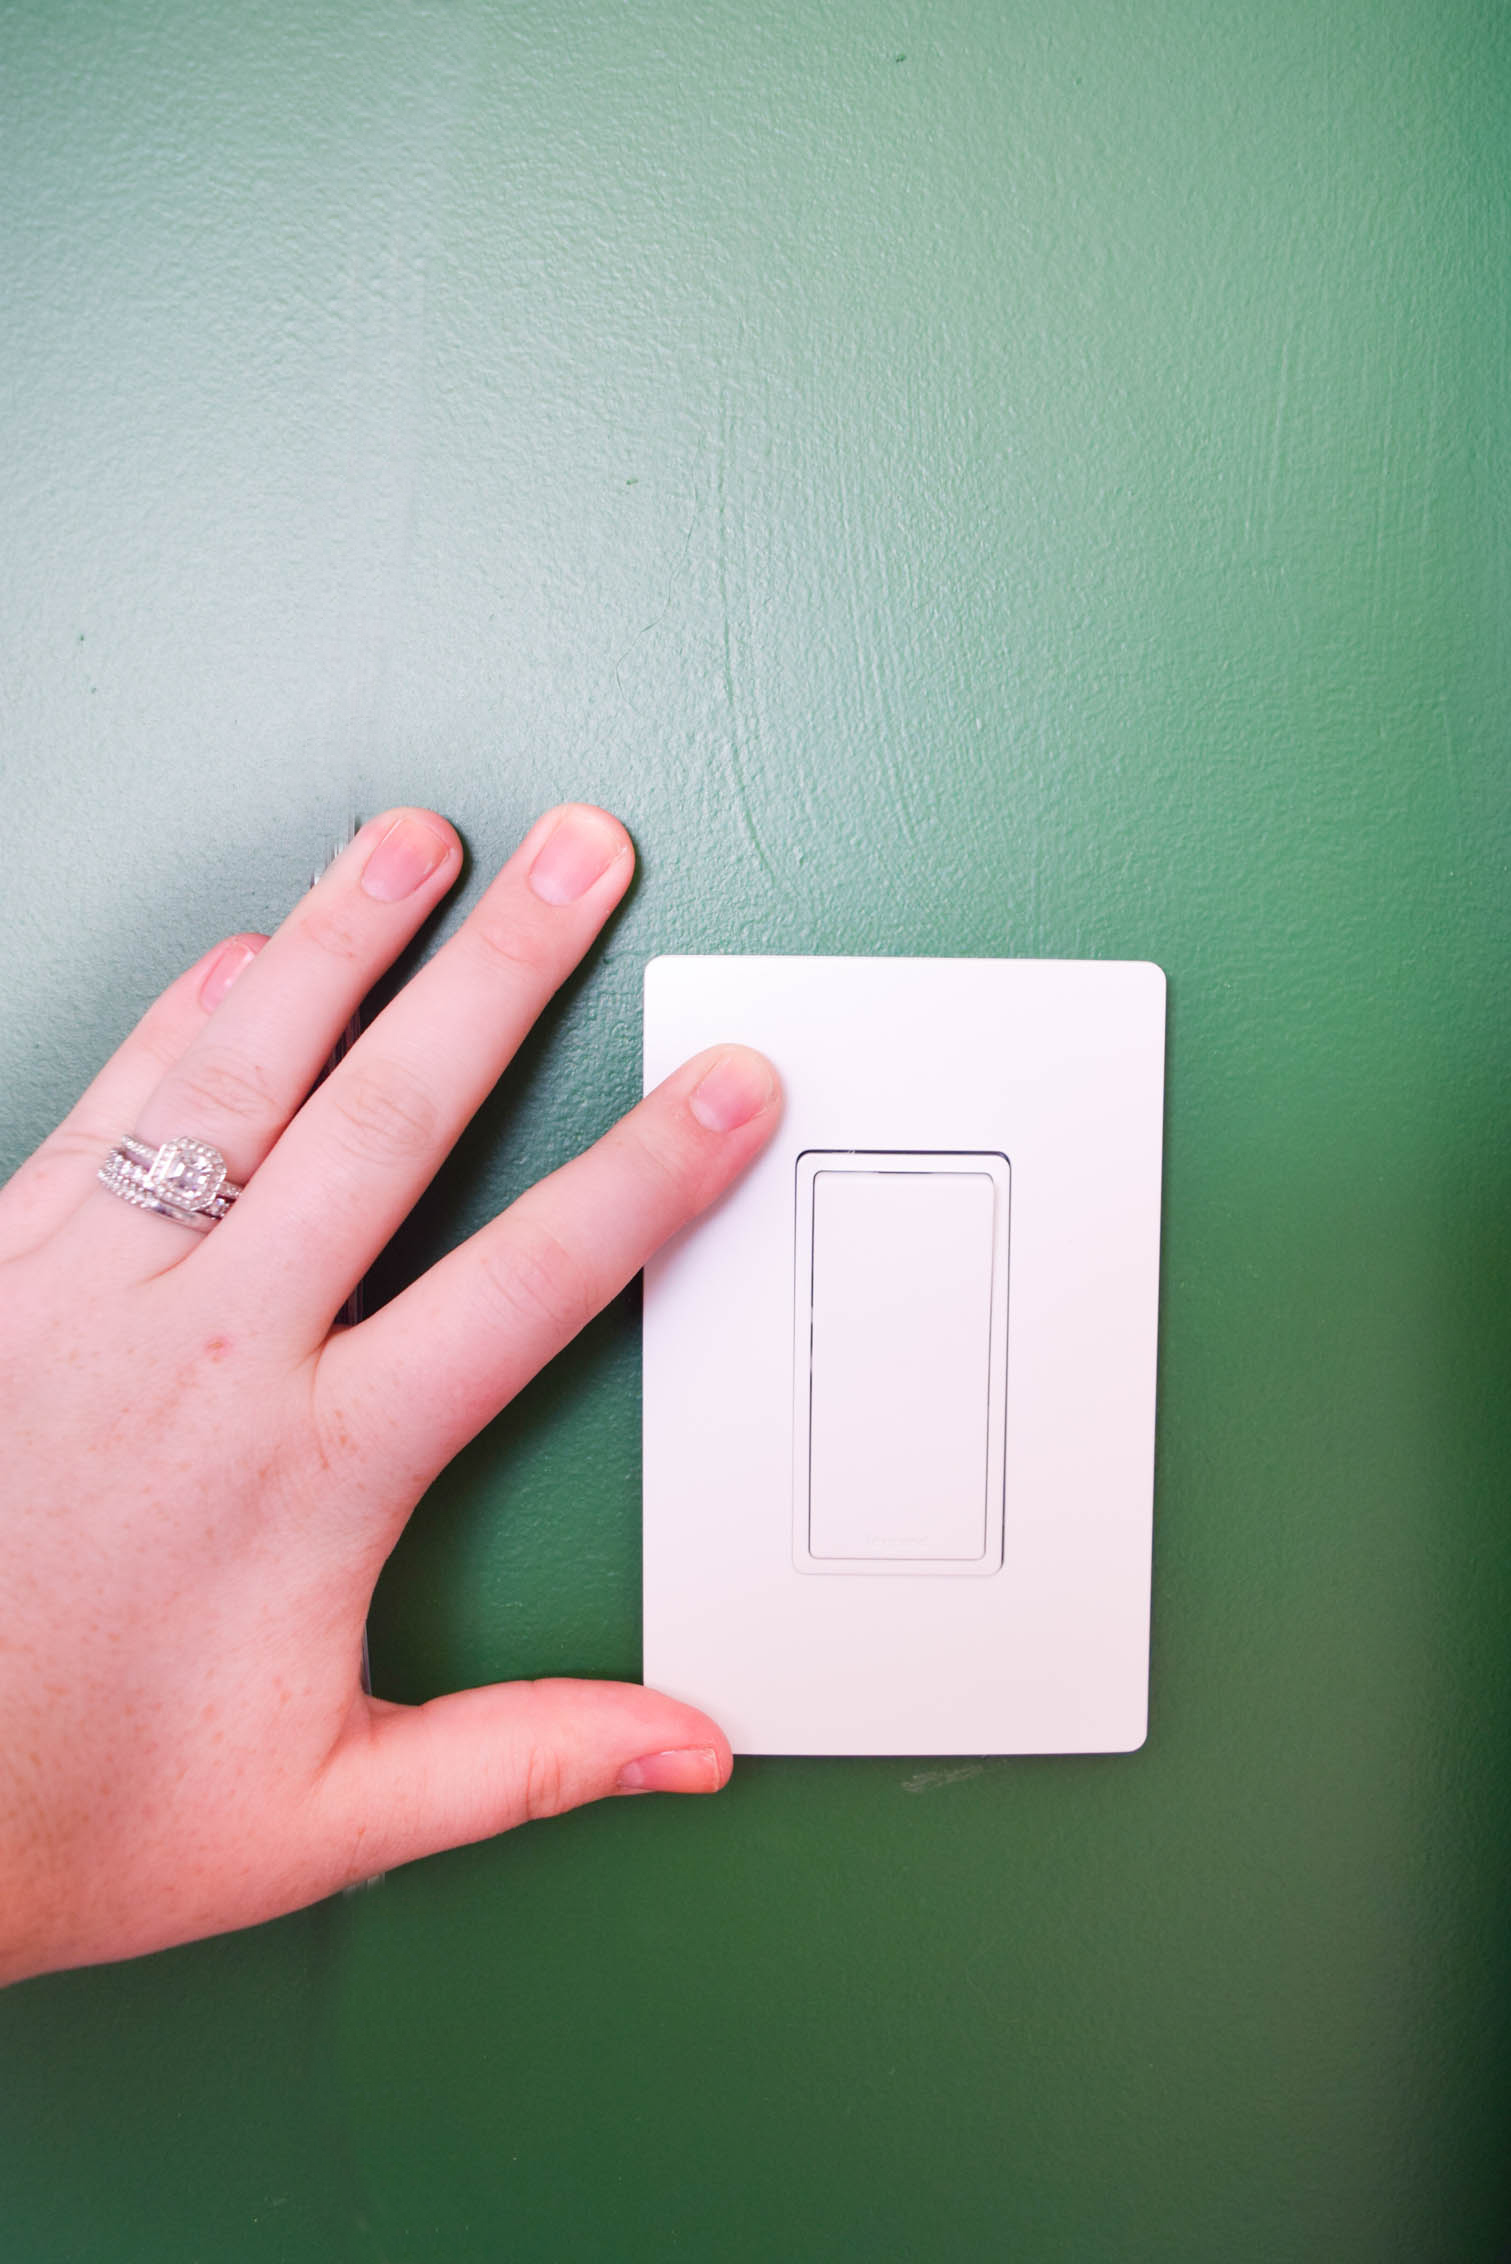 Swapping light switches is easy AF y'all. Who knew?! Legrand did, which is why they made these beautiful switches that are easy to install. Come catch the deets on the blog, as well as a sneak peak of our eclectic guest room reveal.